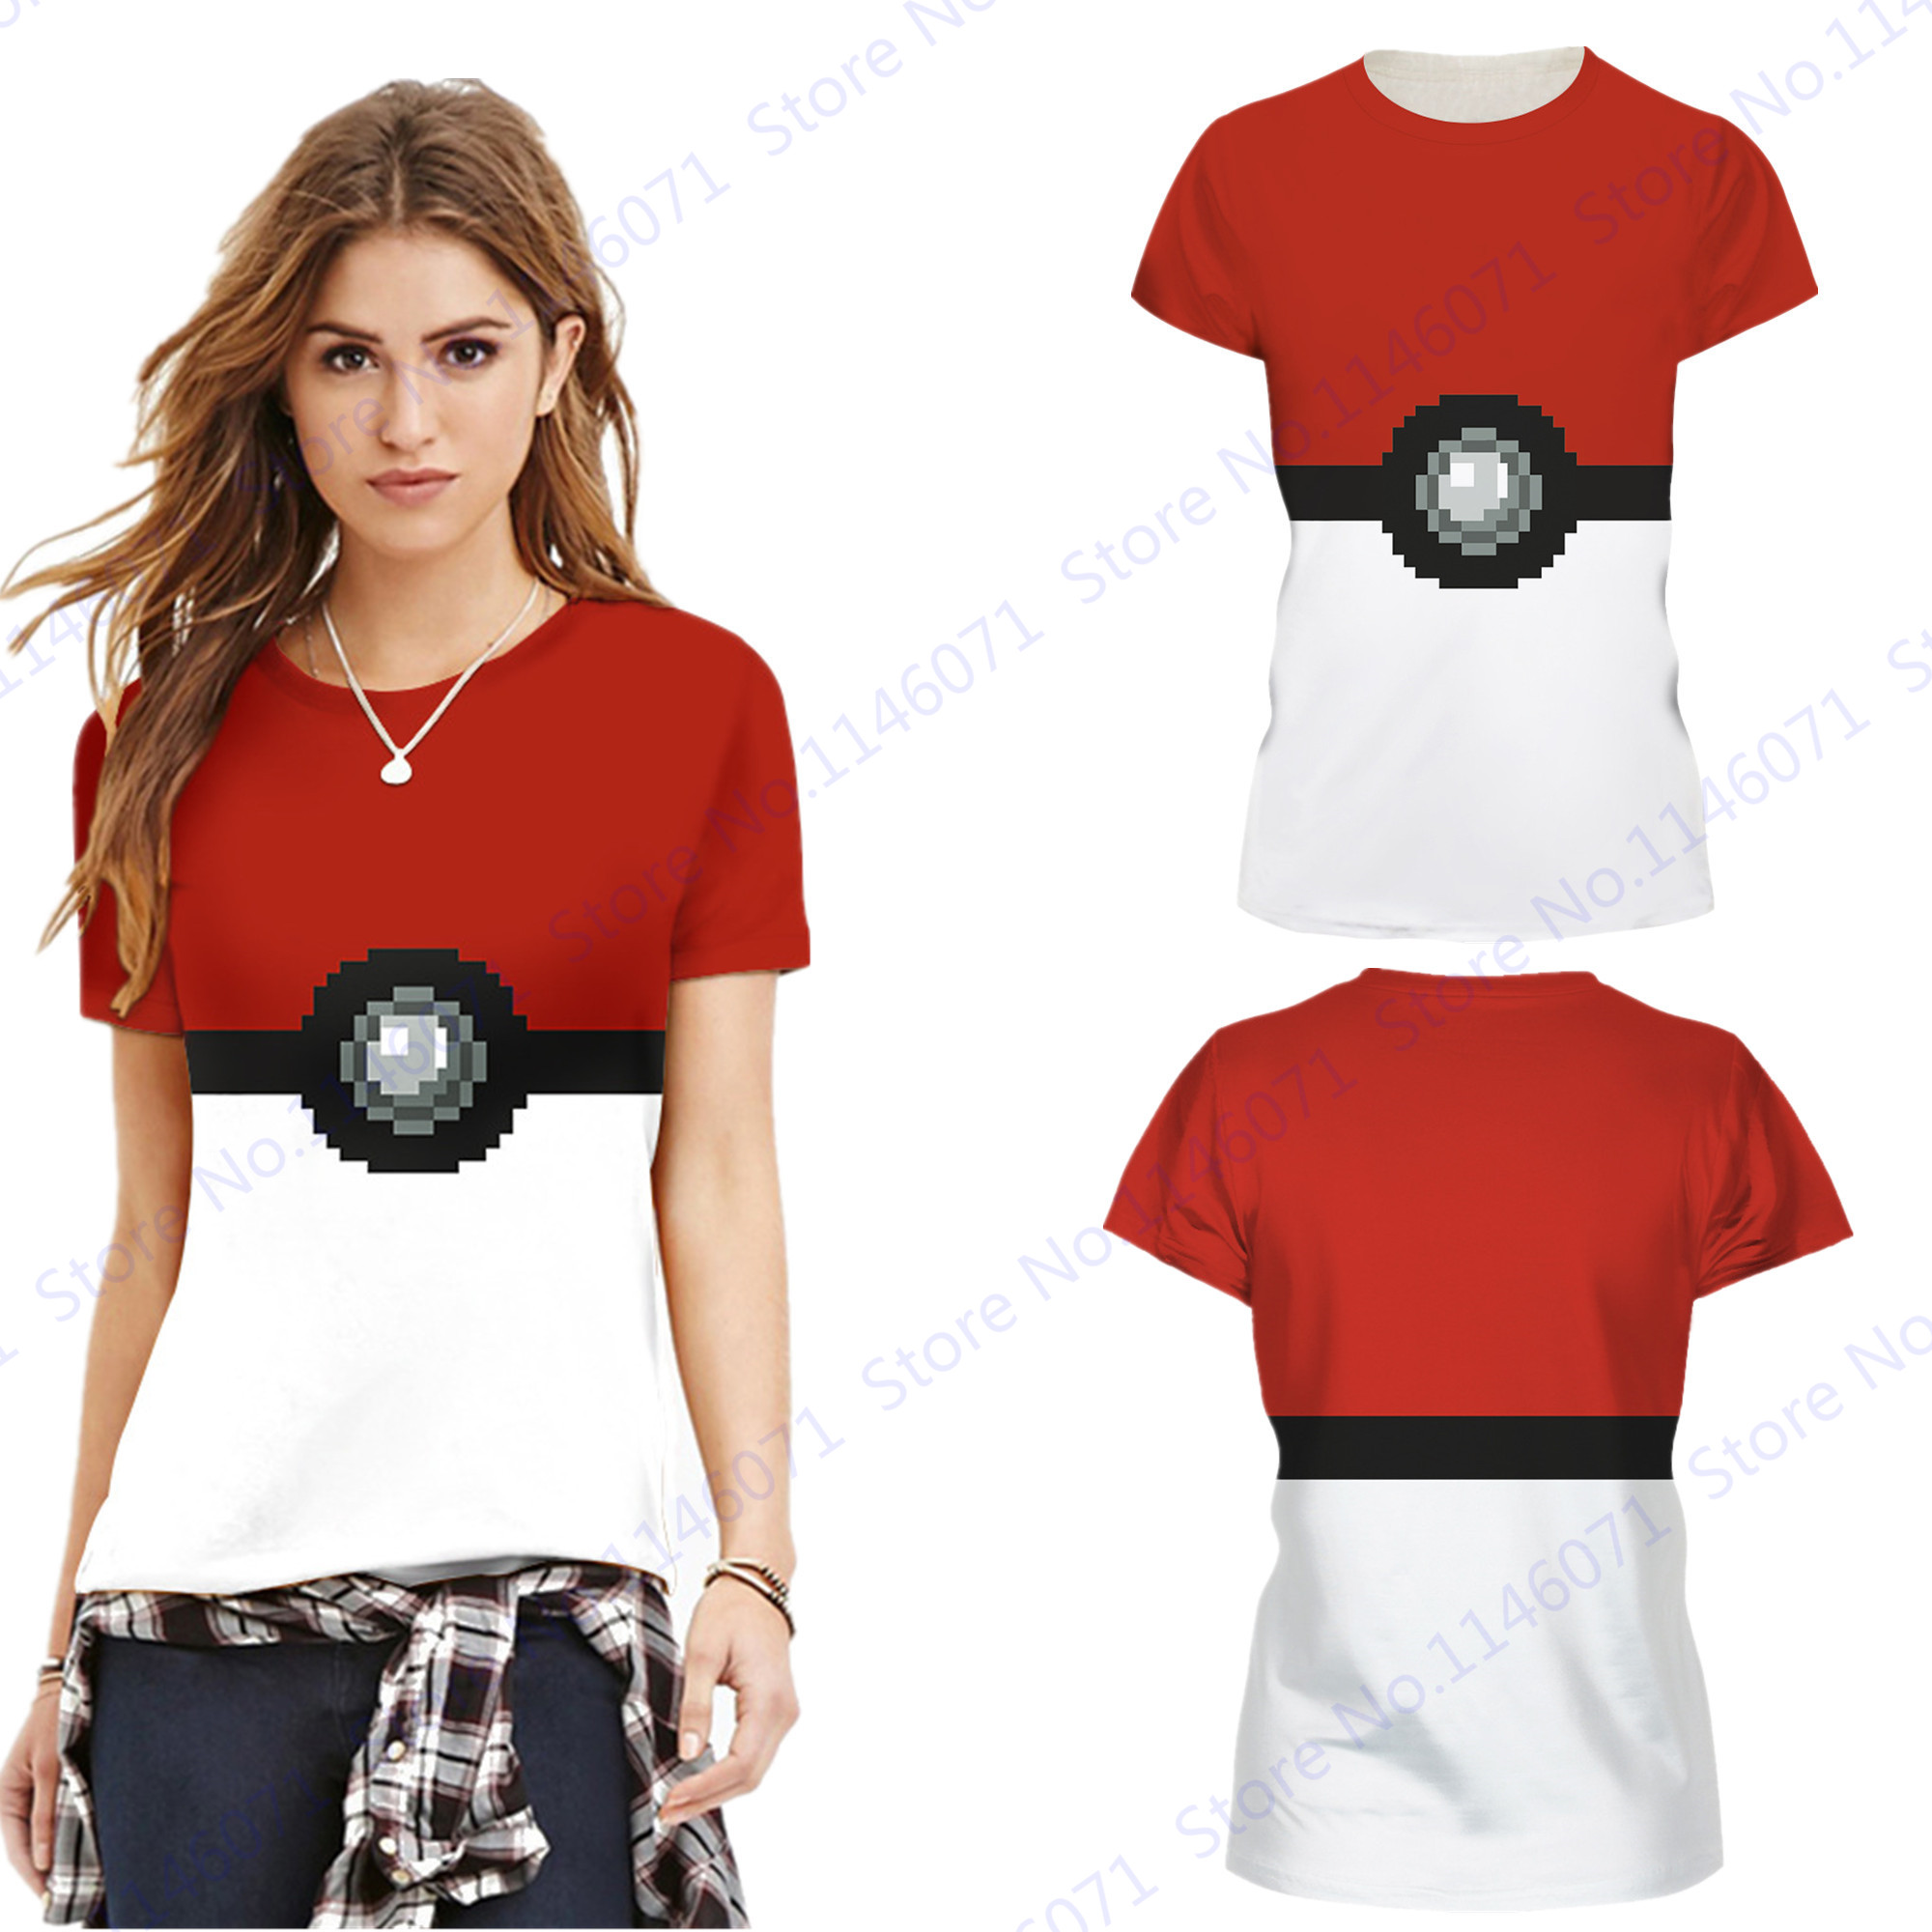 ca1e6a5db73 Detail Feedback Questions about Red White Pokemon Ball Fitness Sports T  Shirts Pokemon Go Gym Exercise Training Tees Shirt Summer Loose Fit Yoga  Tops ...